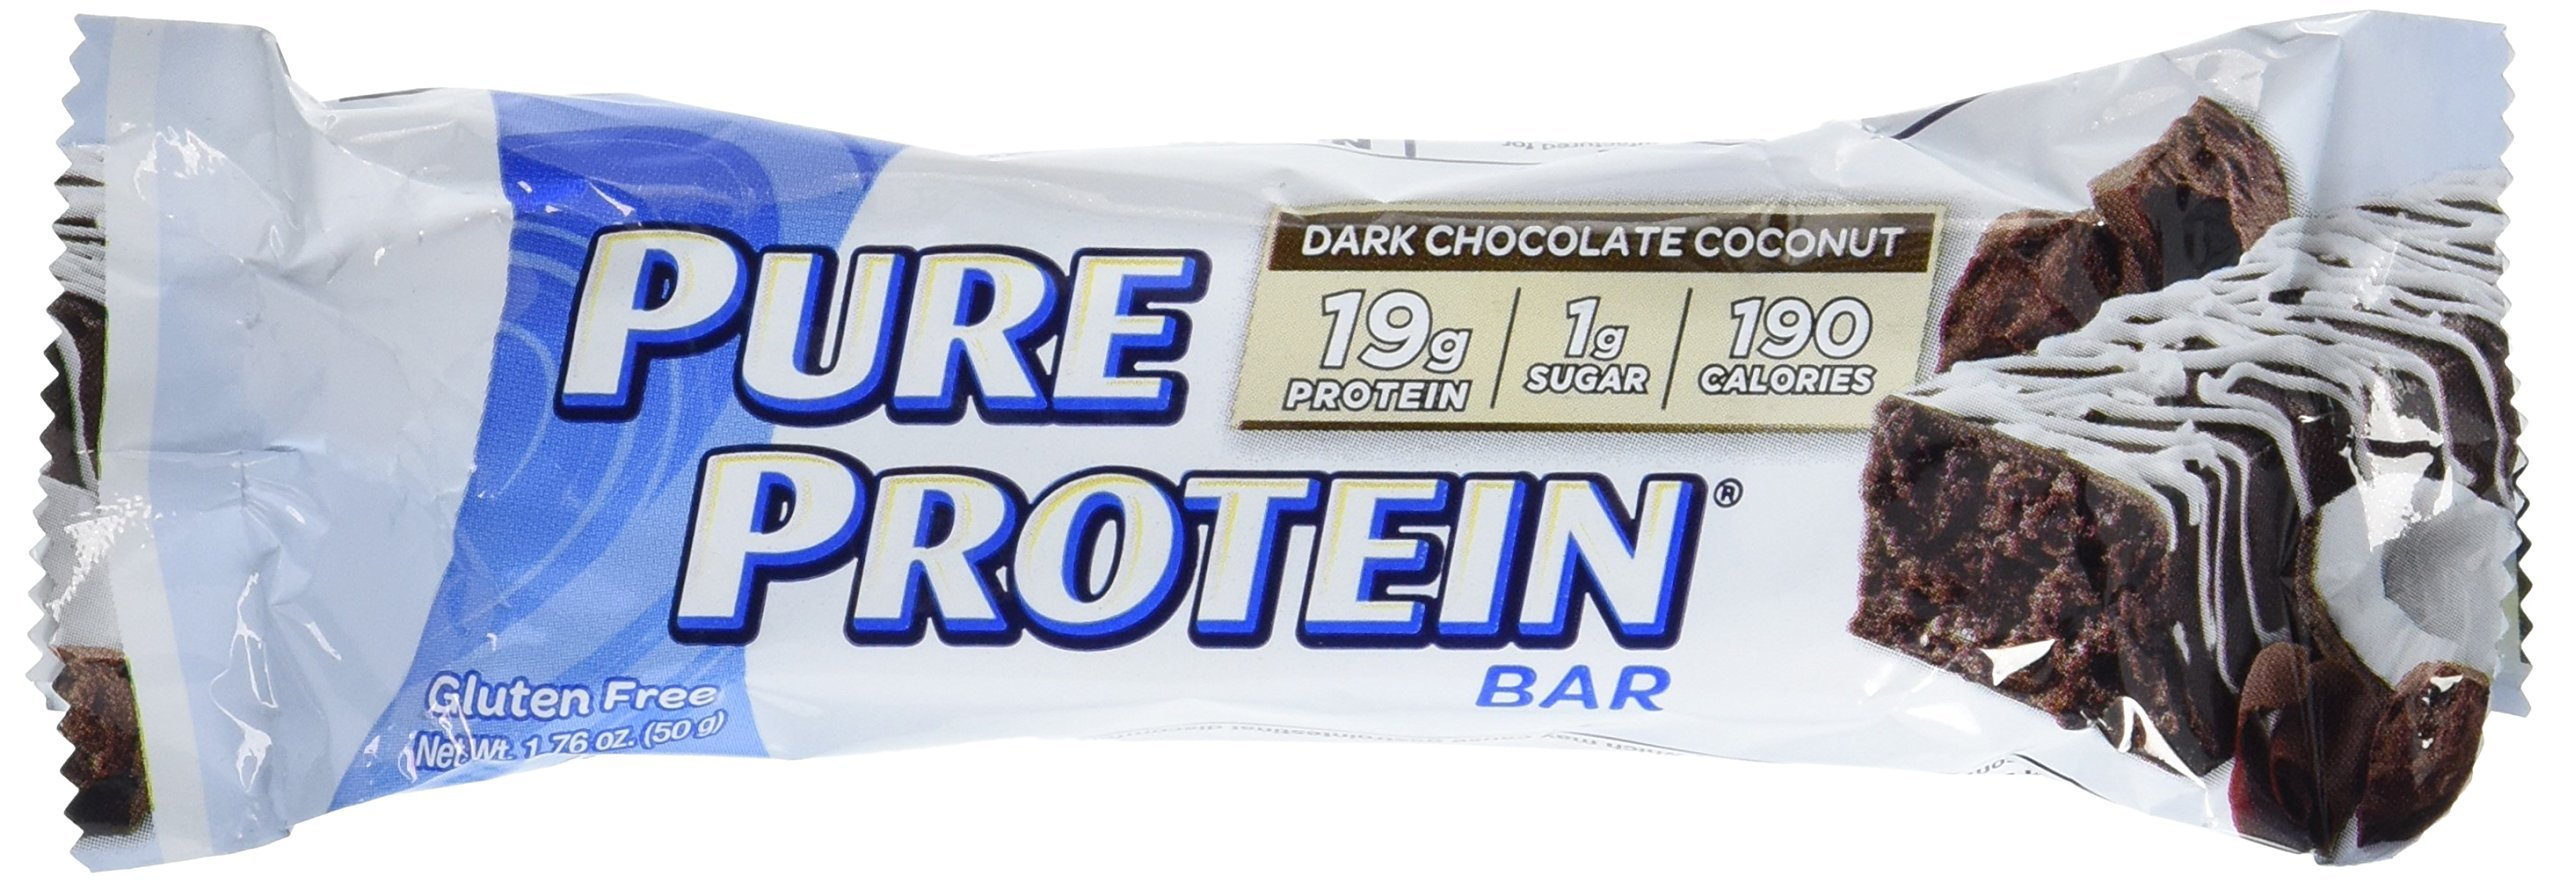 Pure Protein Dark Chocolate Coconut, 1.76oz, 2 Pack (12 Count) by Pure Protein (Image #3)